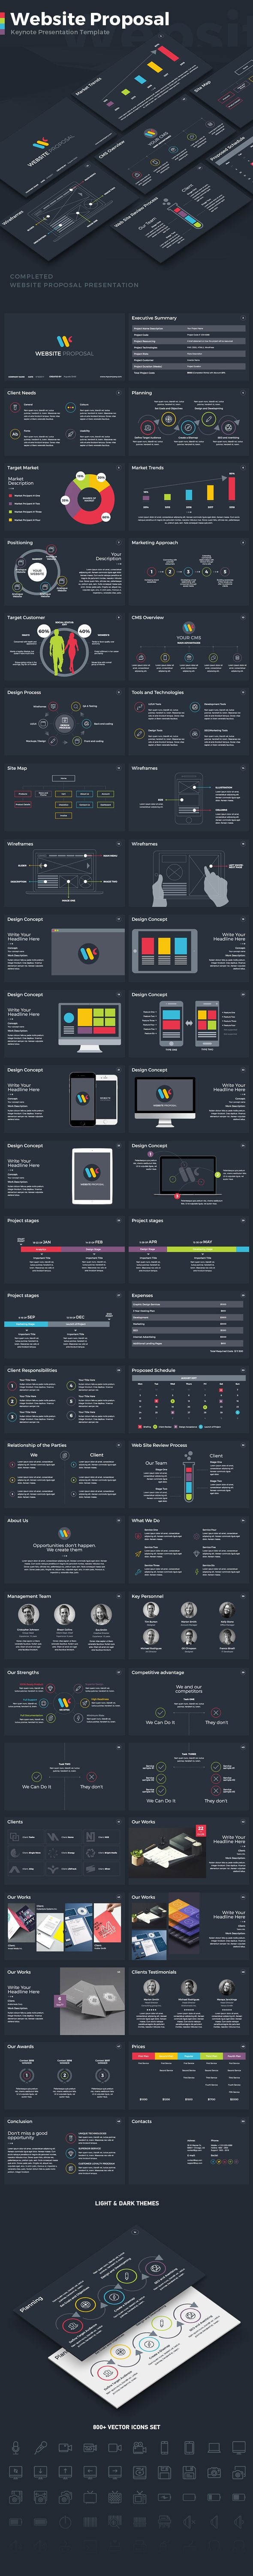 Website Proposal Keynote Template — KEY #company #presentation template • Download ➝ https://graphicriver.net/item/website-proposal-keynote-template/19635176?ref=pxcr